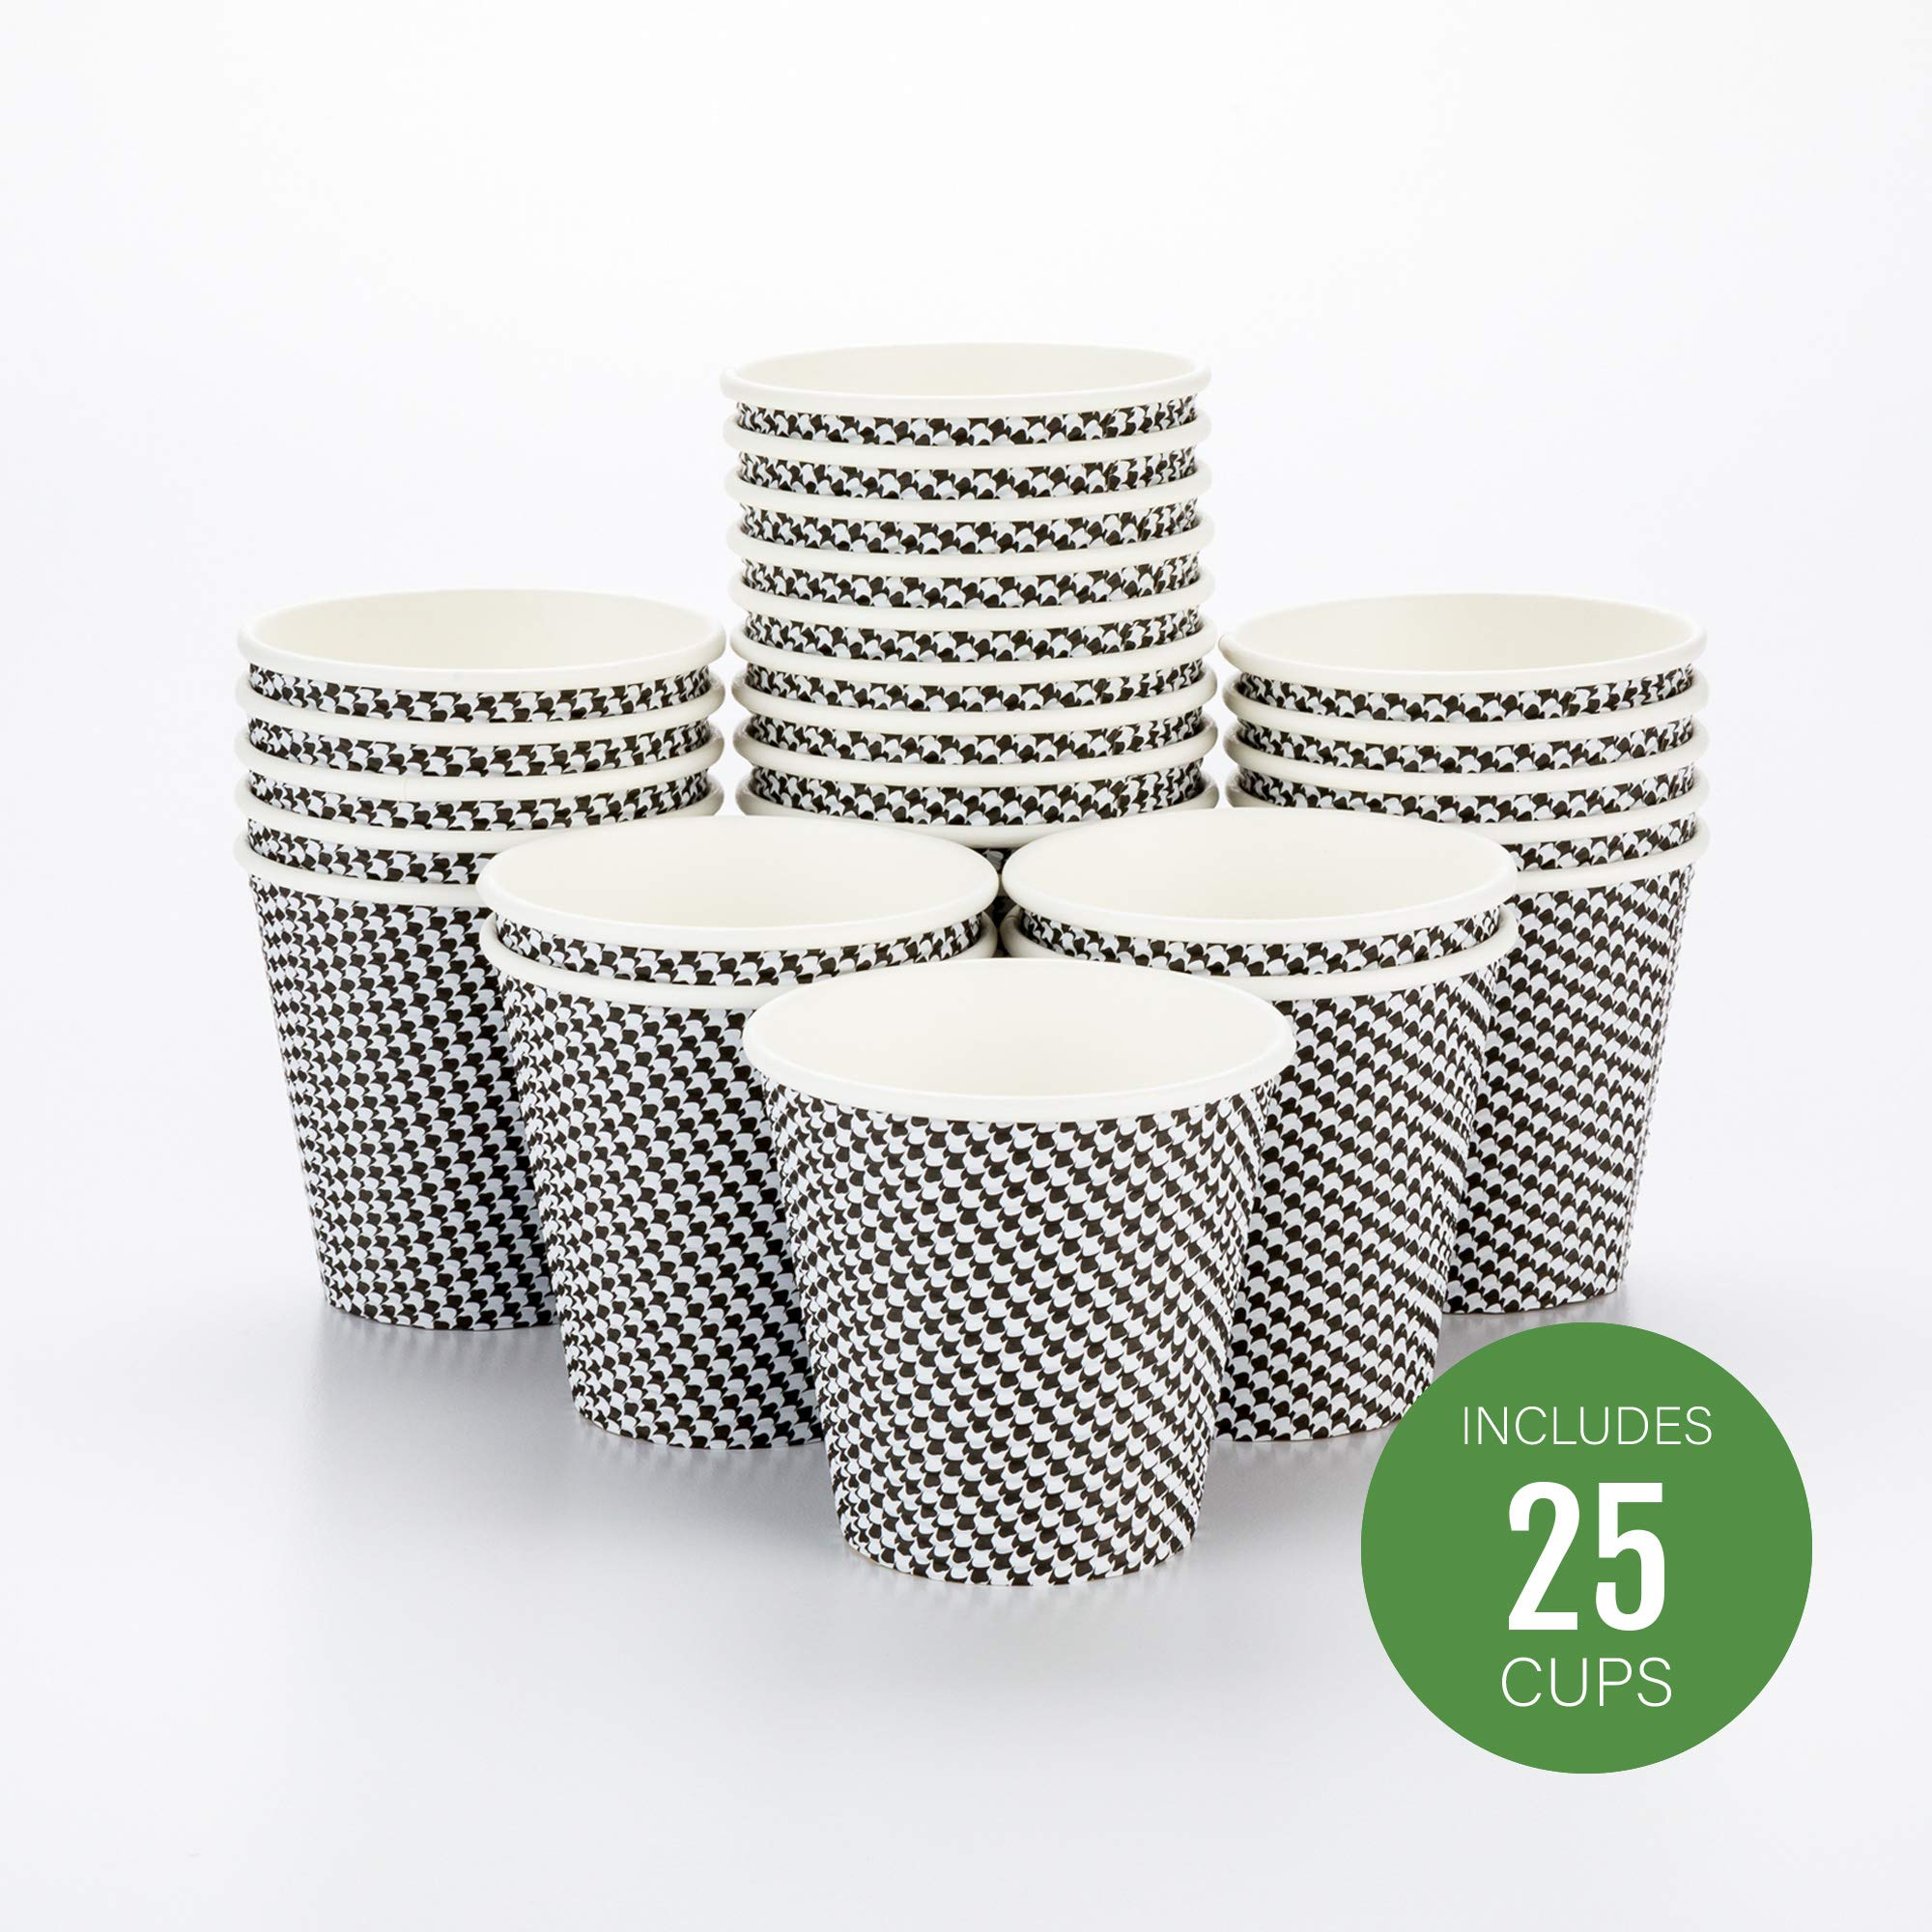 "8 oz Houndstooth Paper Coffee Cup - Spiral Wall - 3 1/2"" x 3 1/2"" x 3 1/4"" - 25 count box - Restaurantware"